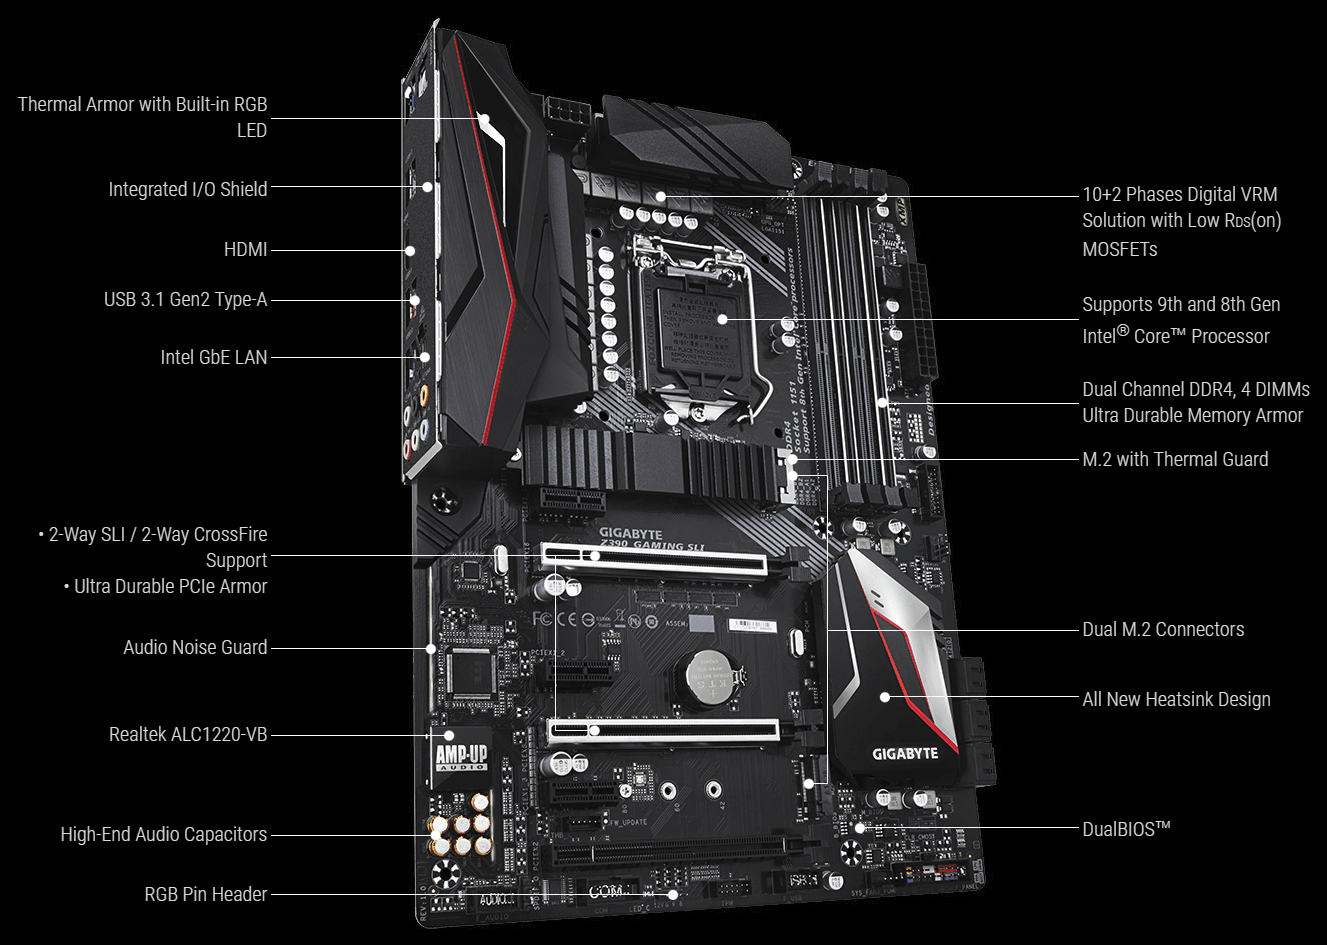 Buy the Gigabyte Z390 GAMING SLI ATX Form Factor, For Intel